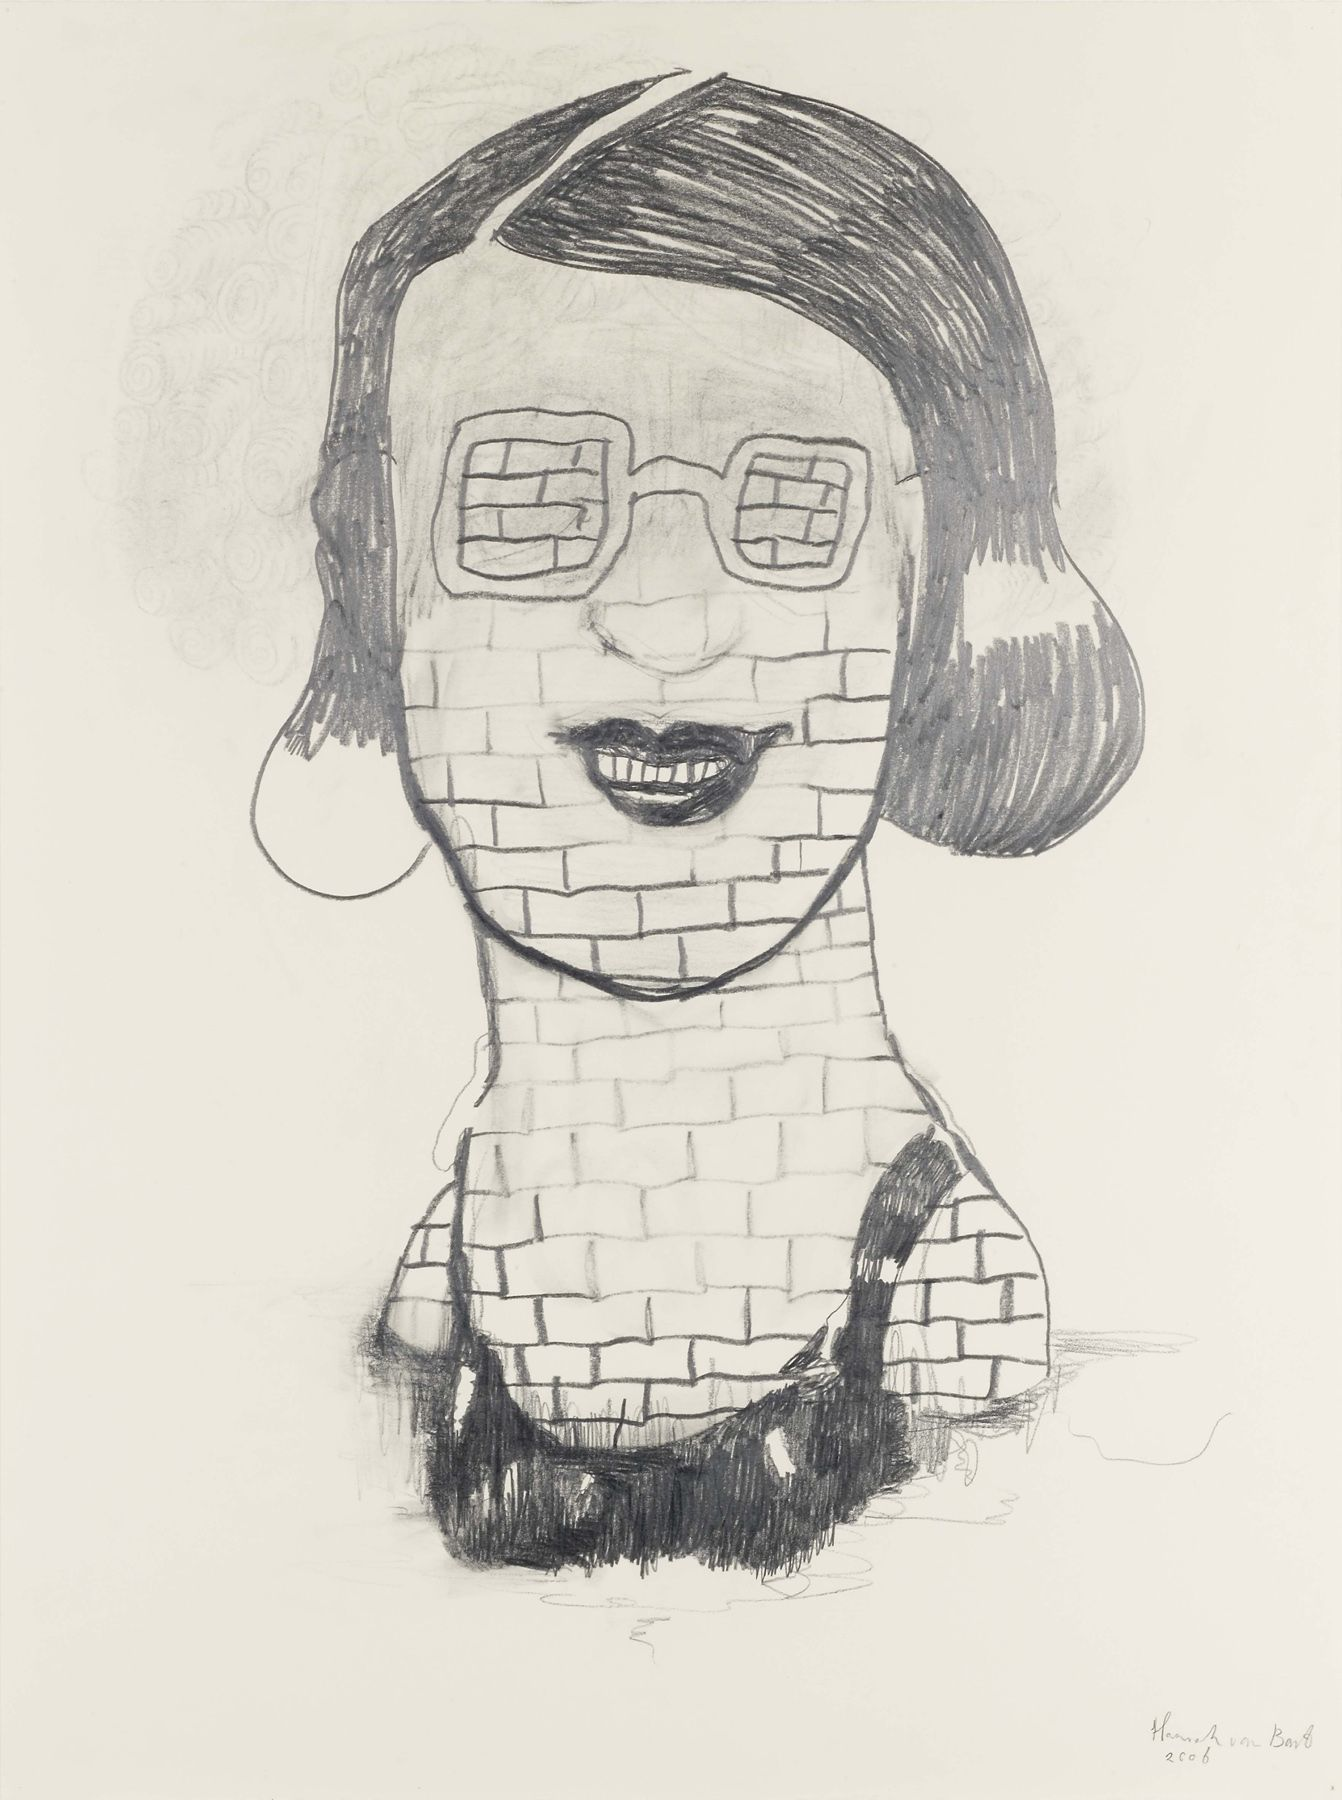 portrait of a woman made of bricks by hannah van bart